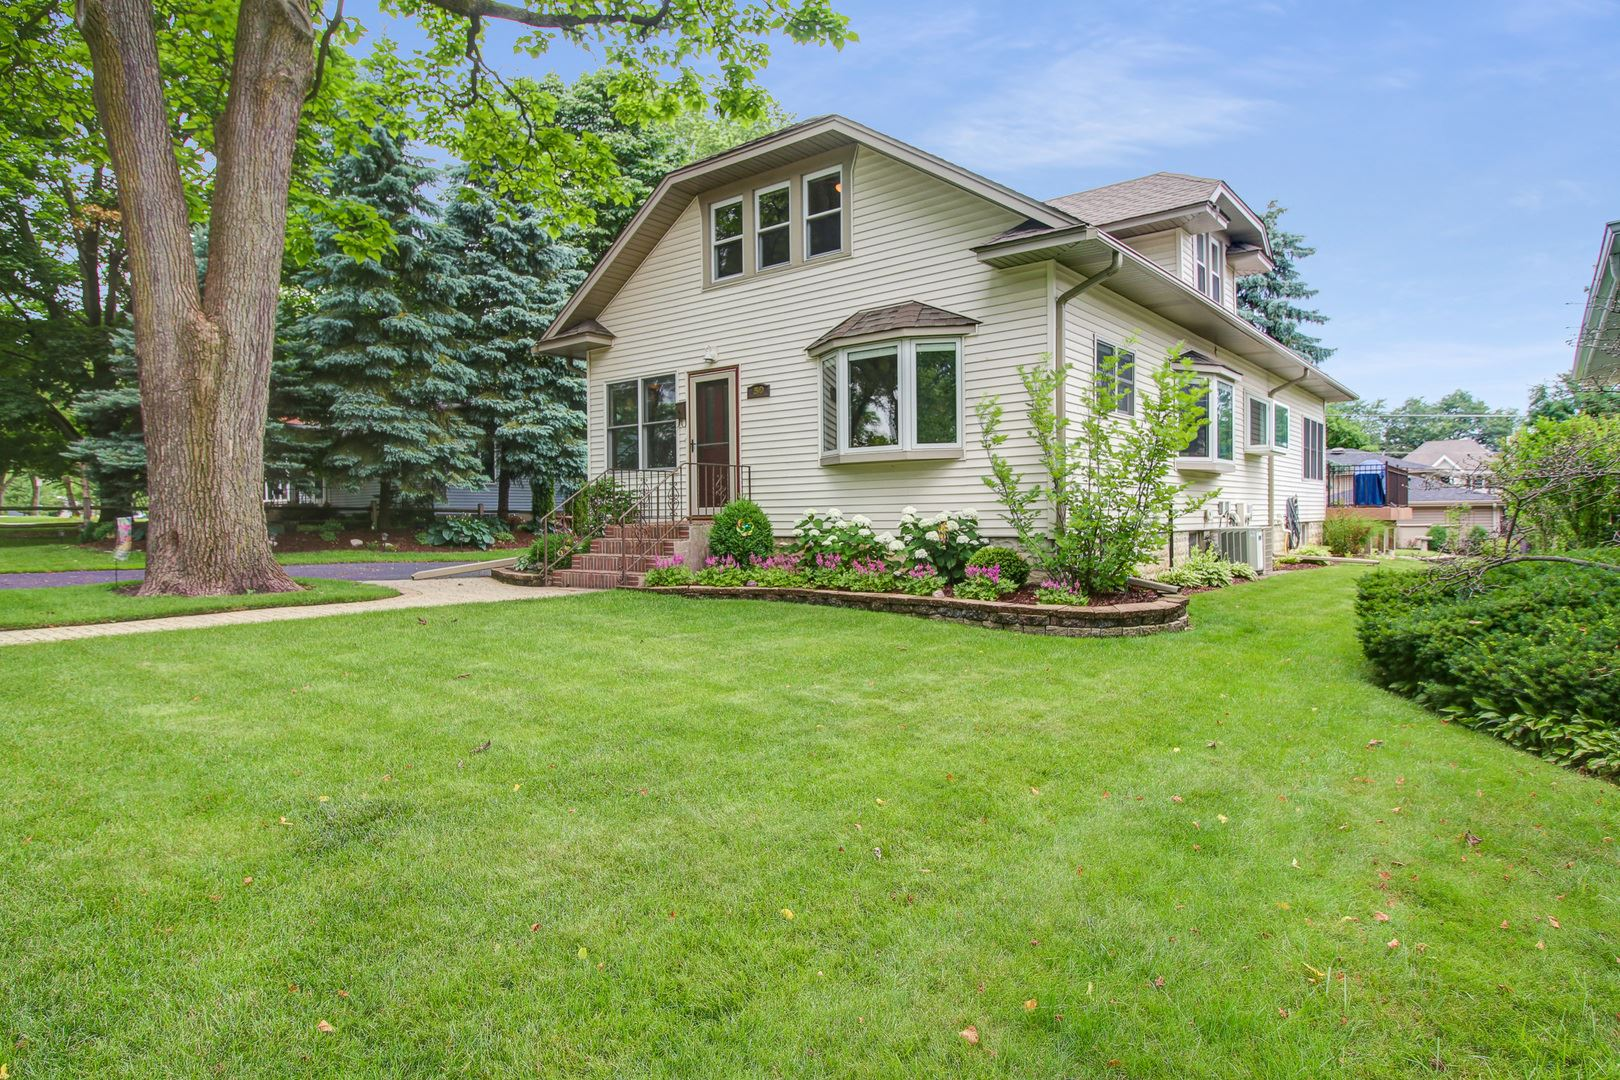 50 W THORNDALE Avenue, Roselle, IL 60172 - #: 10769303